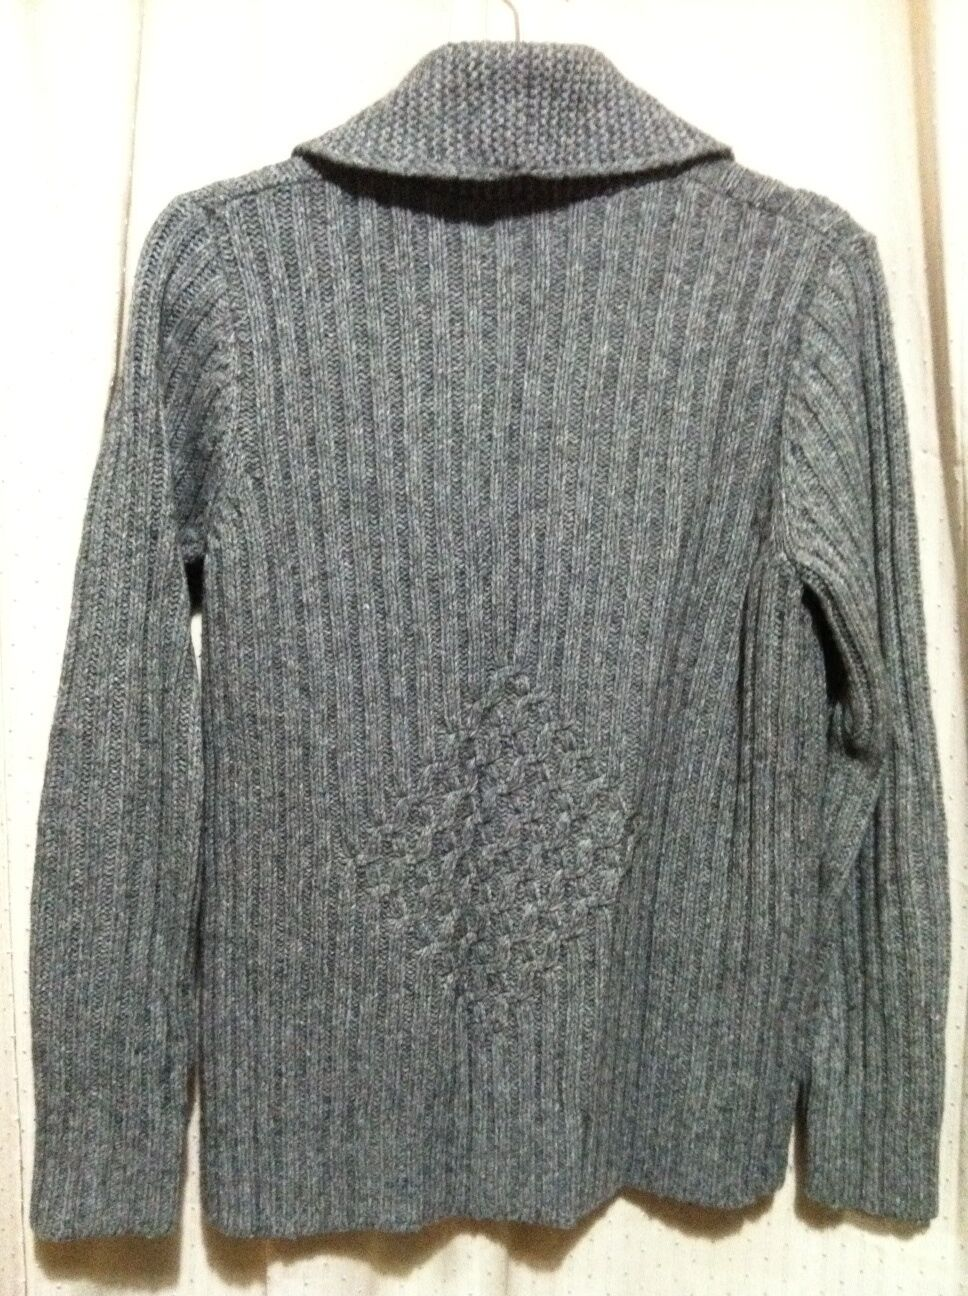 LANDS' END Grey Patterned Knit Collar Cardigan Sweater Top Top Top Womens' Size M 10 -12 19a027